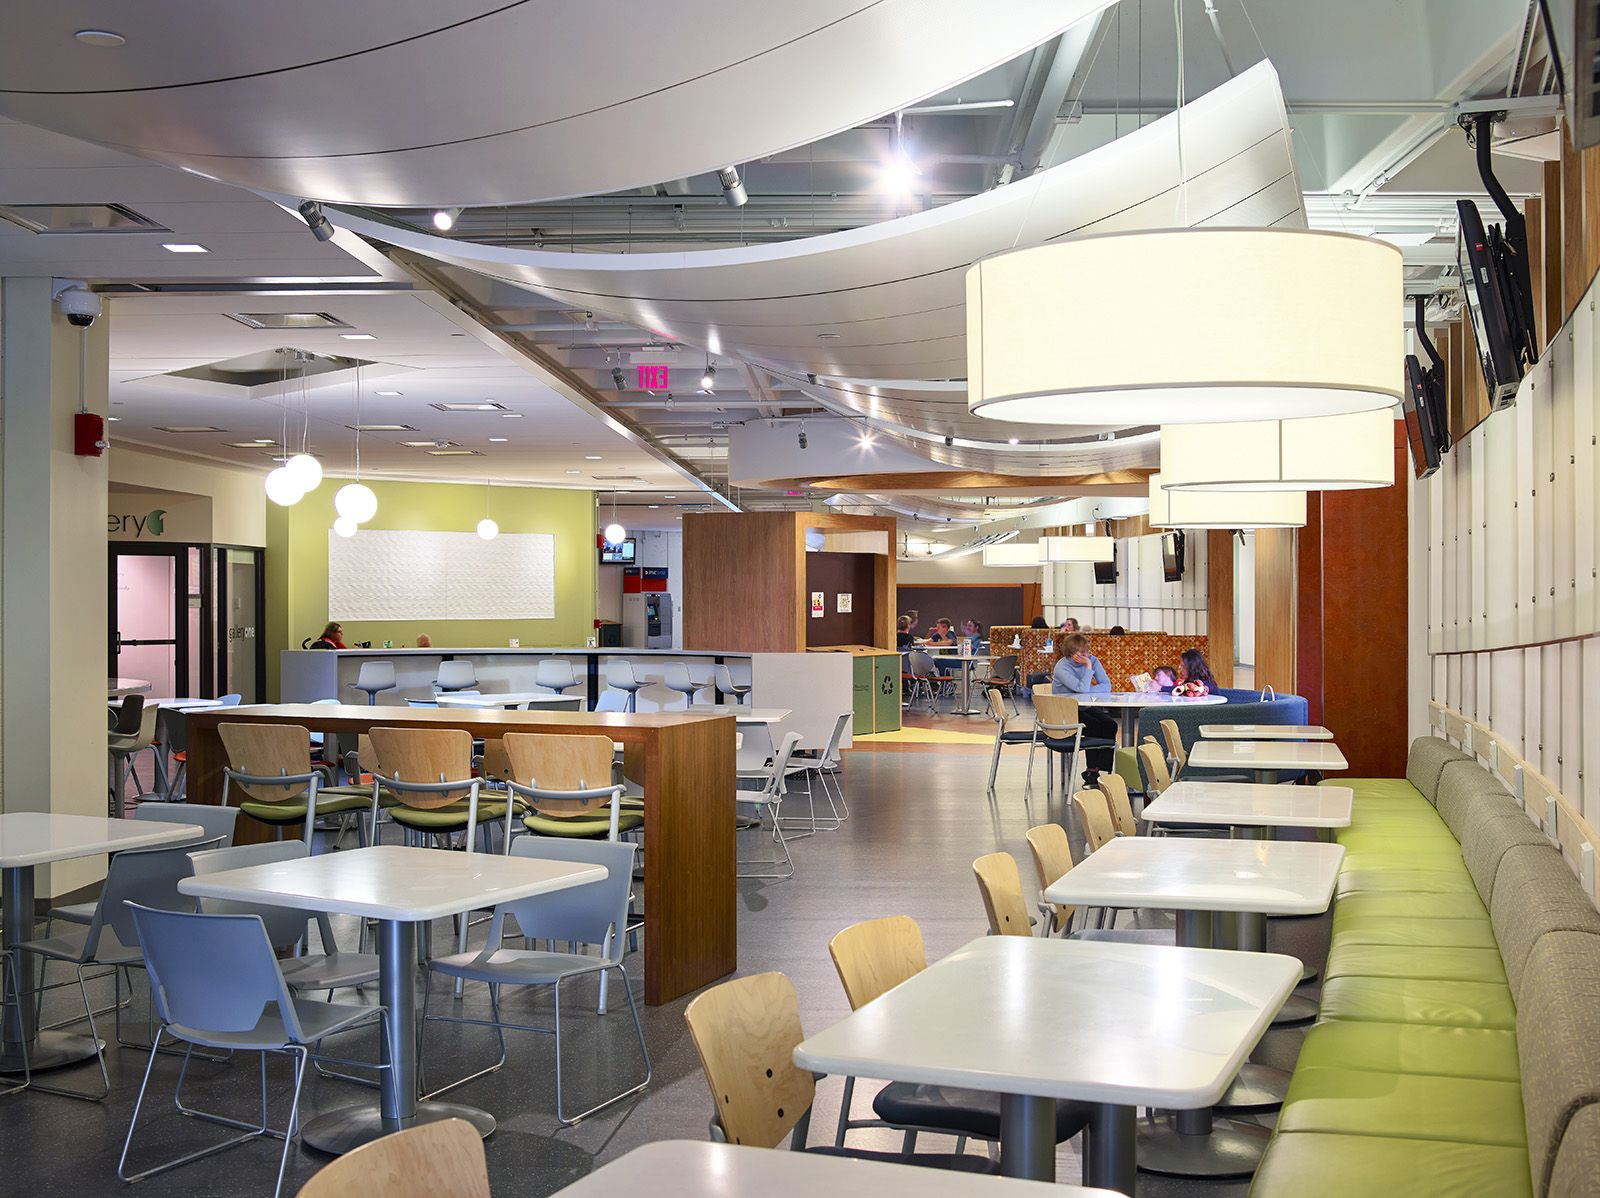 Washtenaw community college student center work cafe - Interior decorator students for hire ...